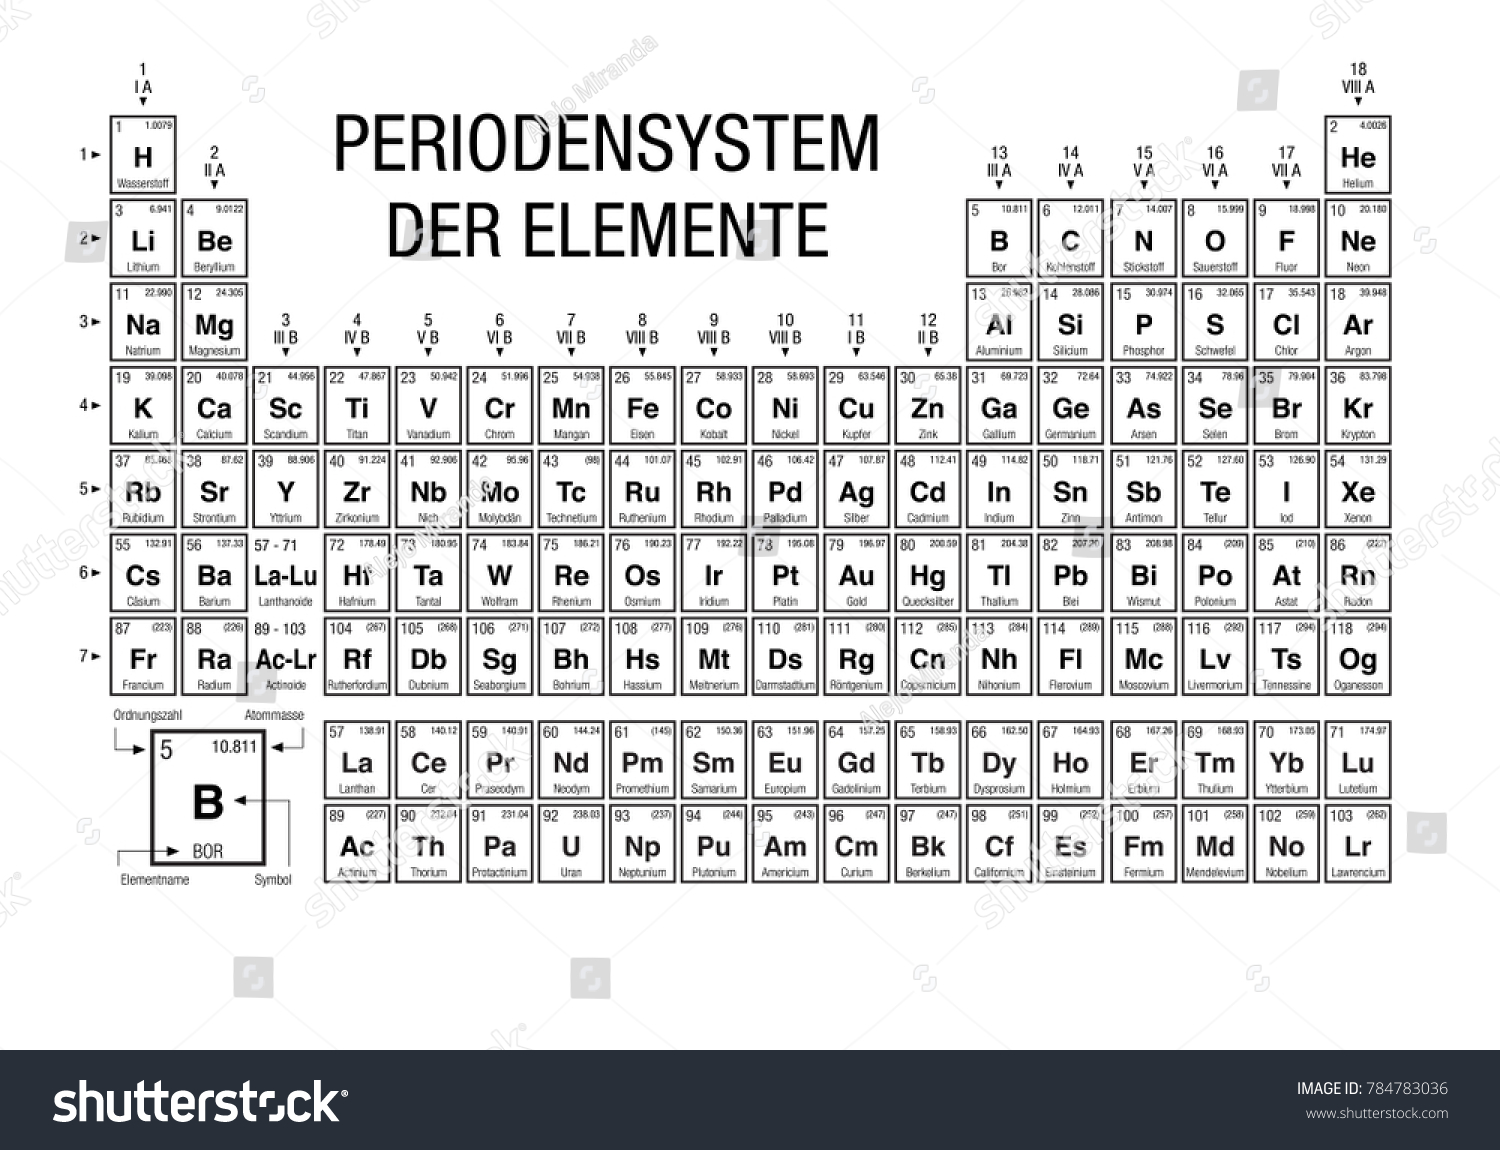 Periodensystem der elemente periodic table elements stock vector periodensystem der elemente periodic table elements stock vector 784783036 shutterstock urtaz Choice Image